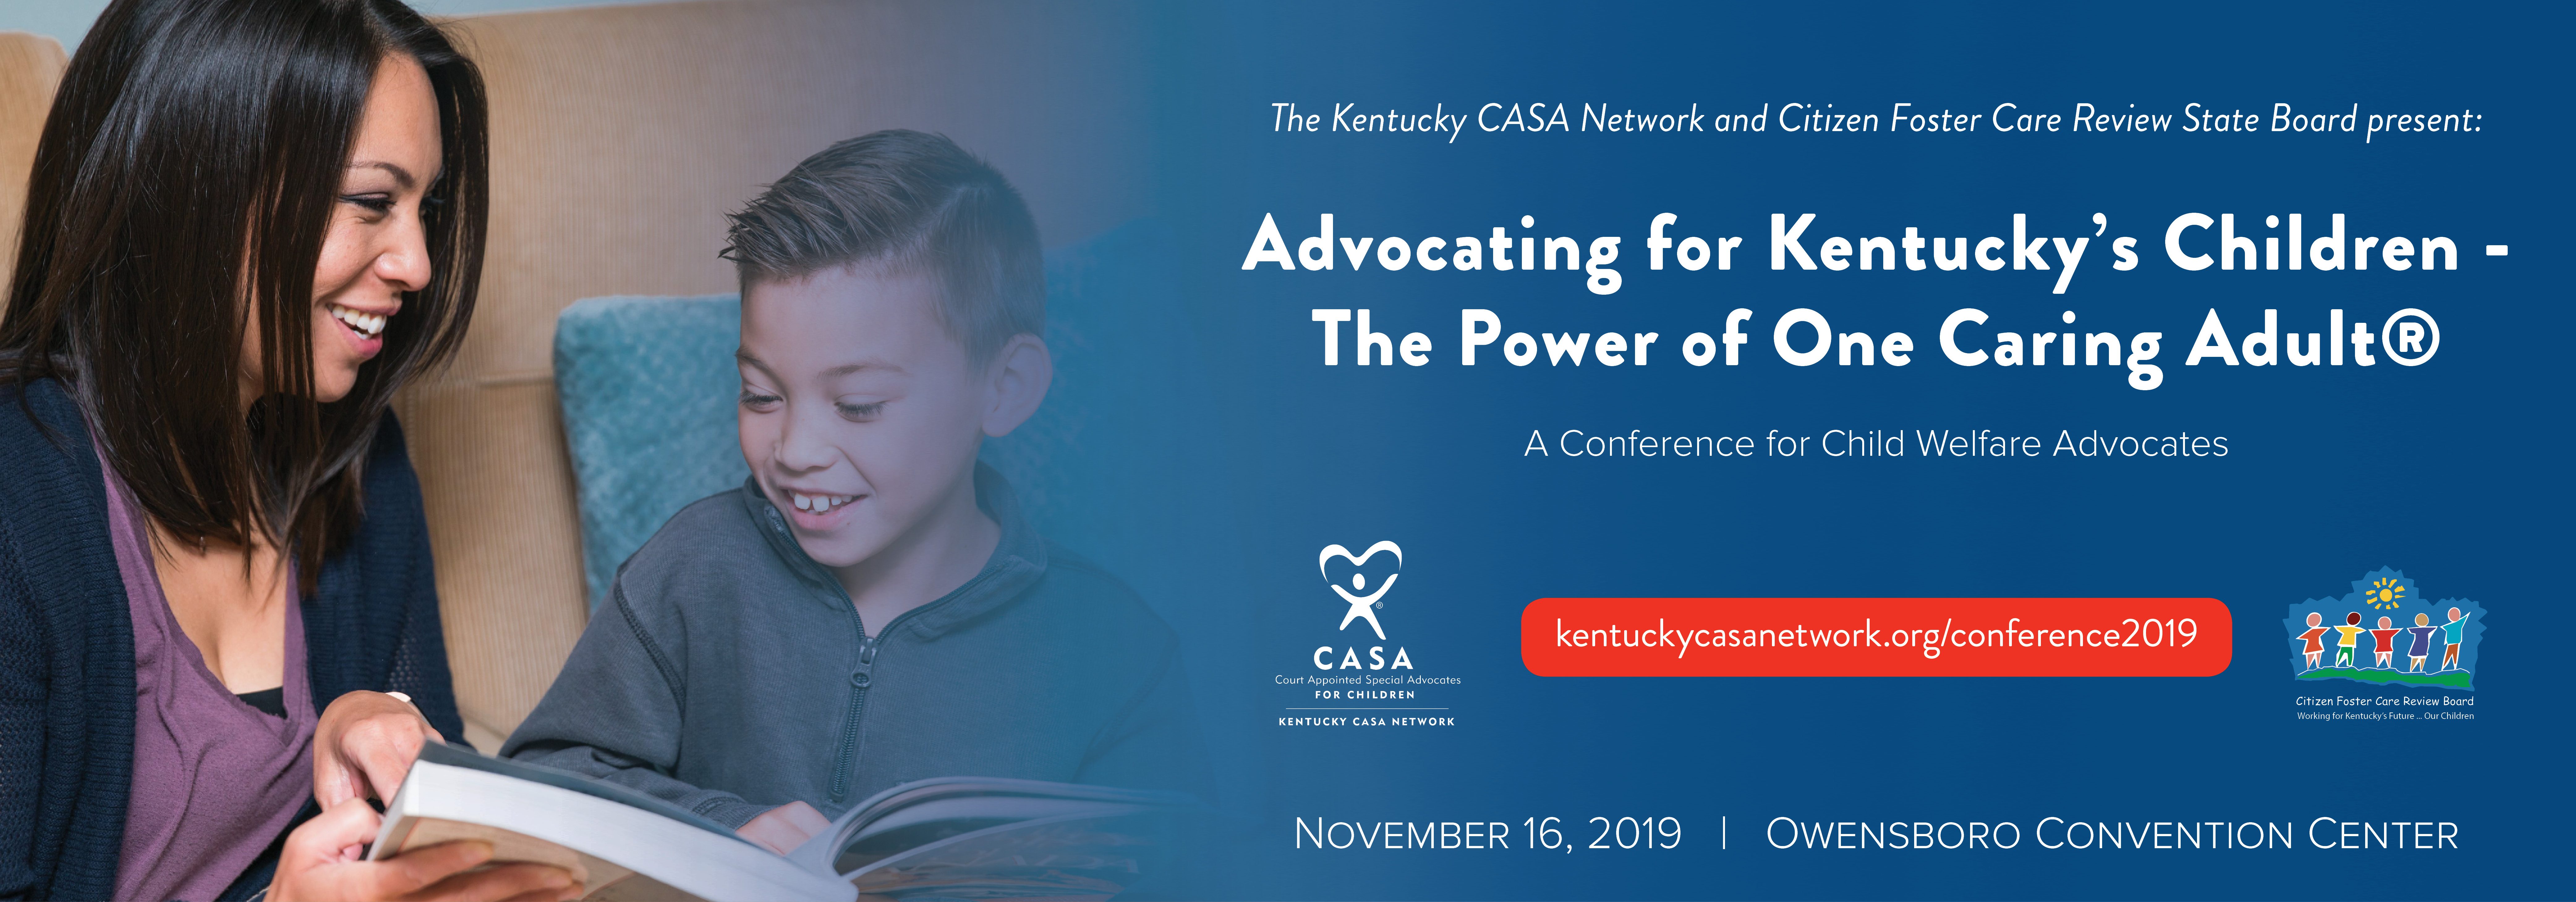 Advocating for Kentucky's Children – The Power of One Caring Adult ® Conference